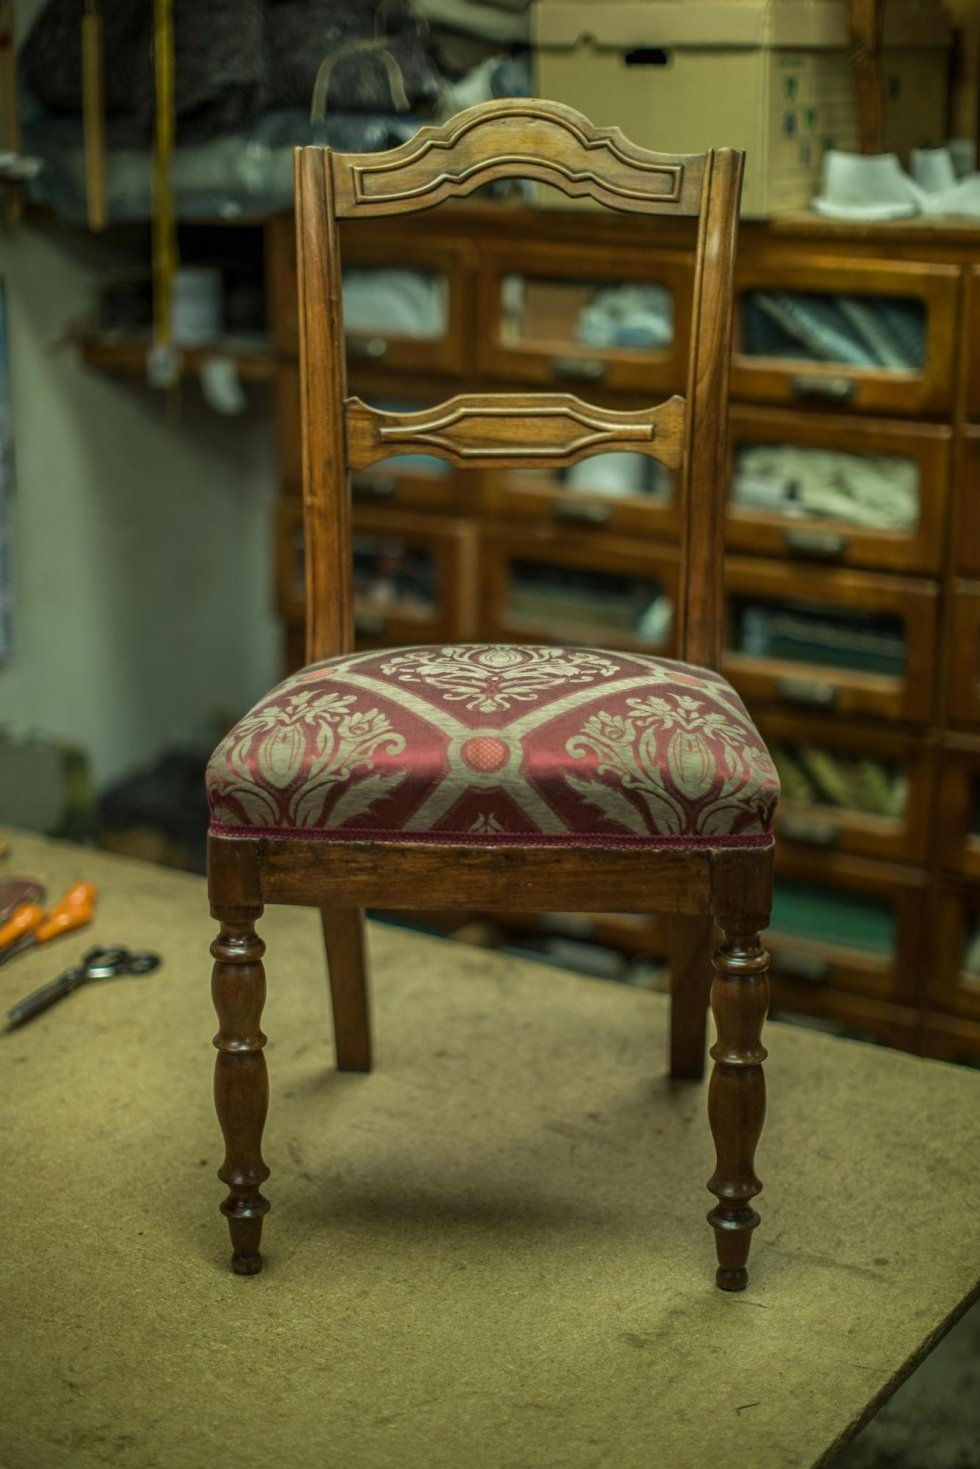 repair of coil chairs